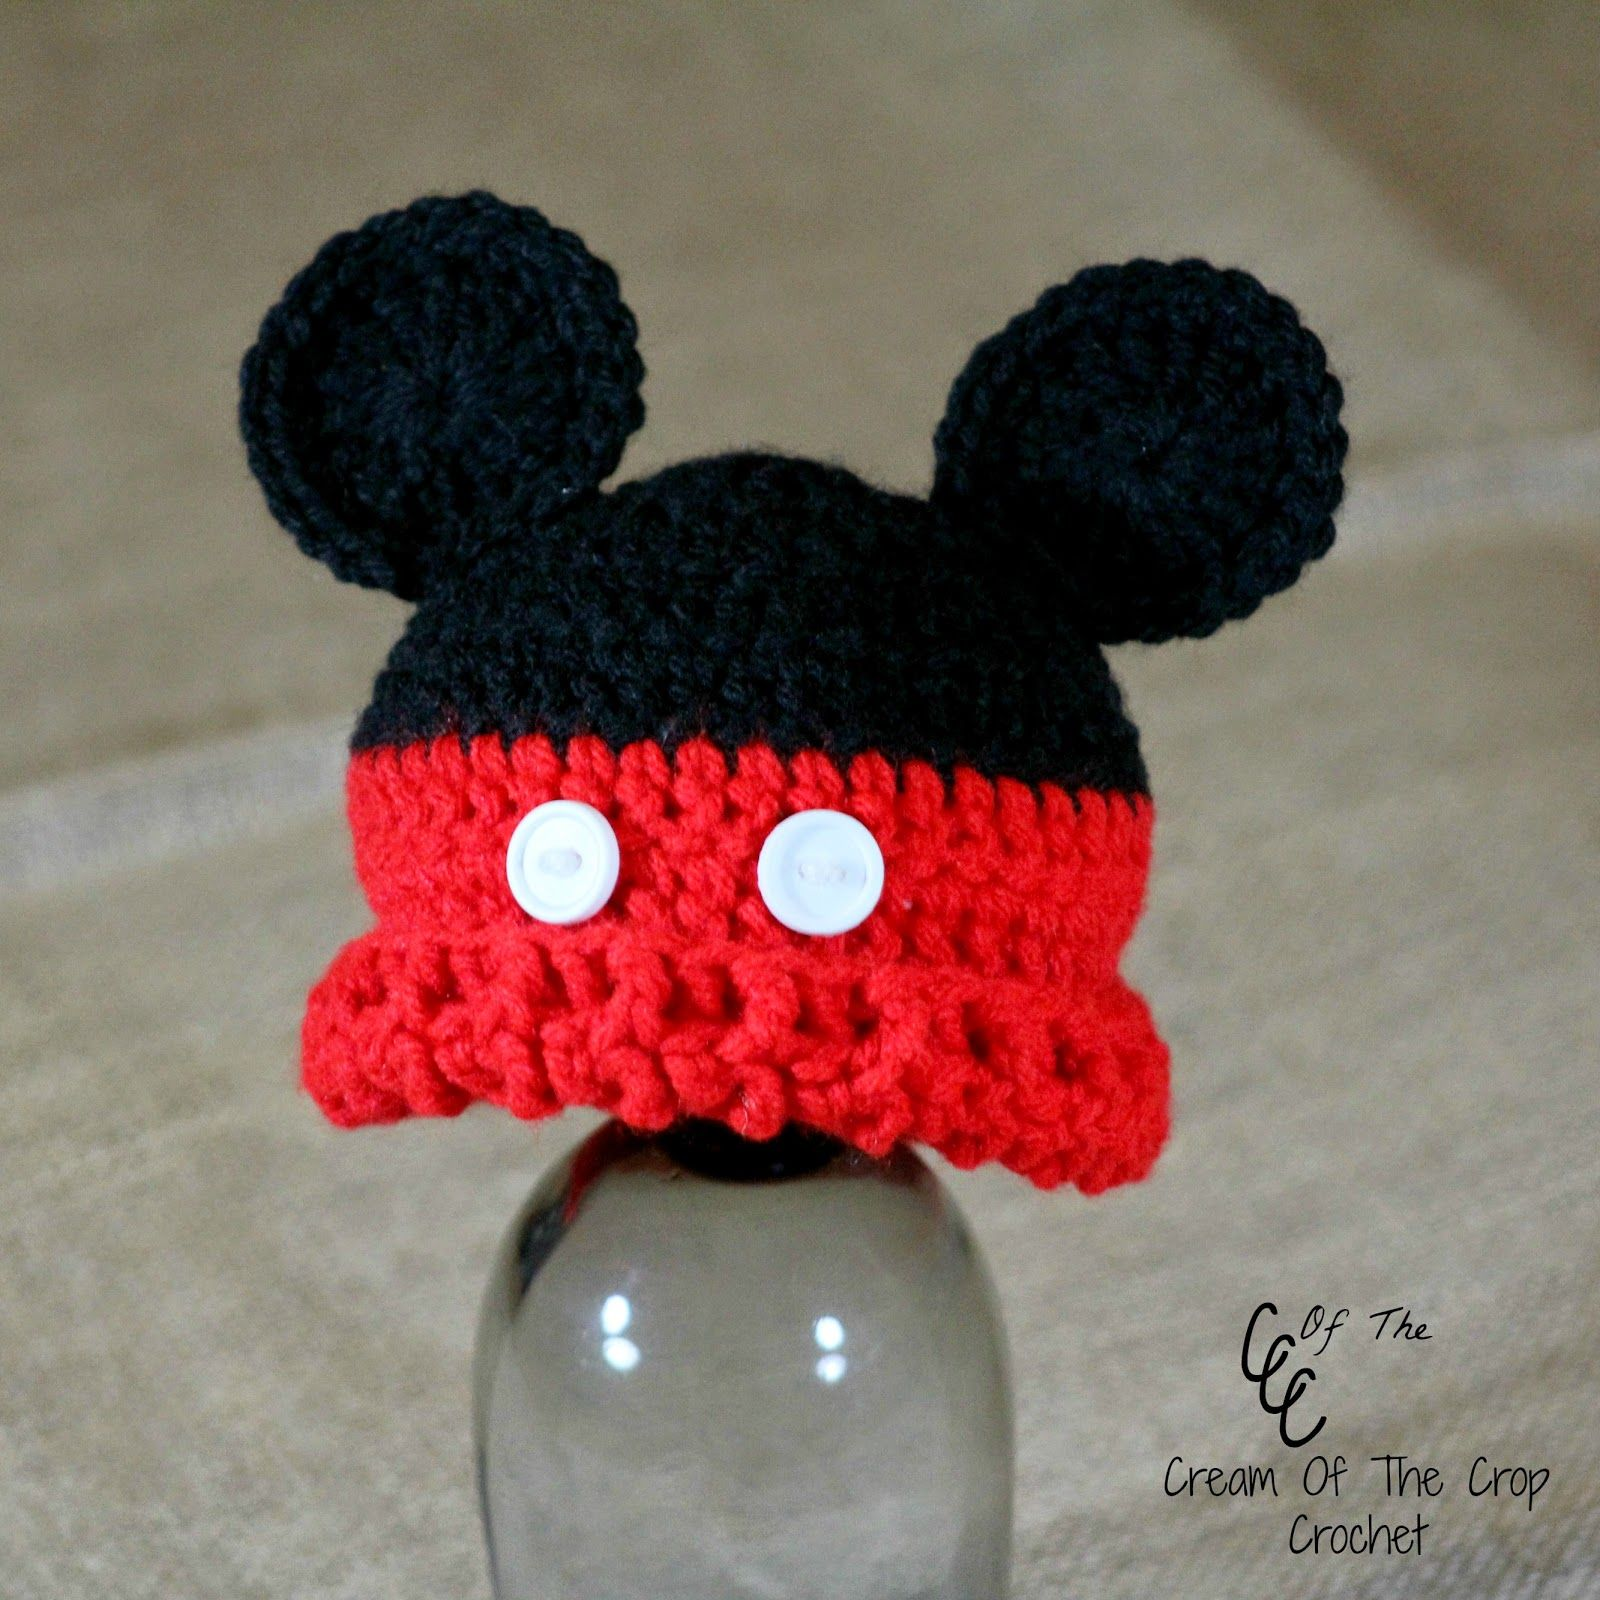 Look how cute this preemie mouse hat pattern is! This is definitely a pattern you should share with your crocheting friends! It comes in 4 different sizes with edging! Maybe even consider donating ...